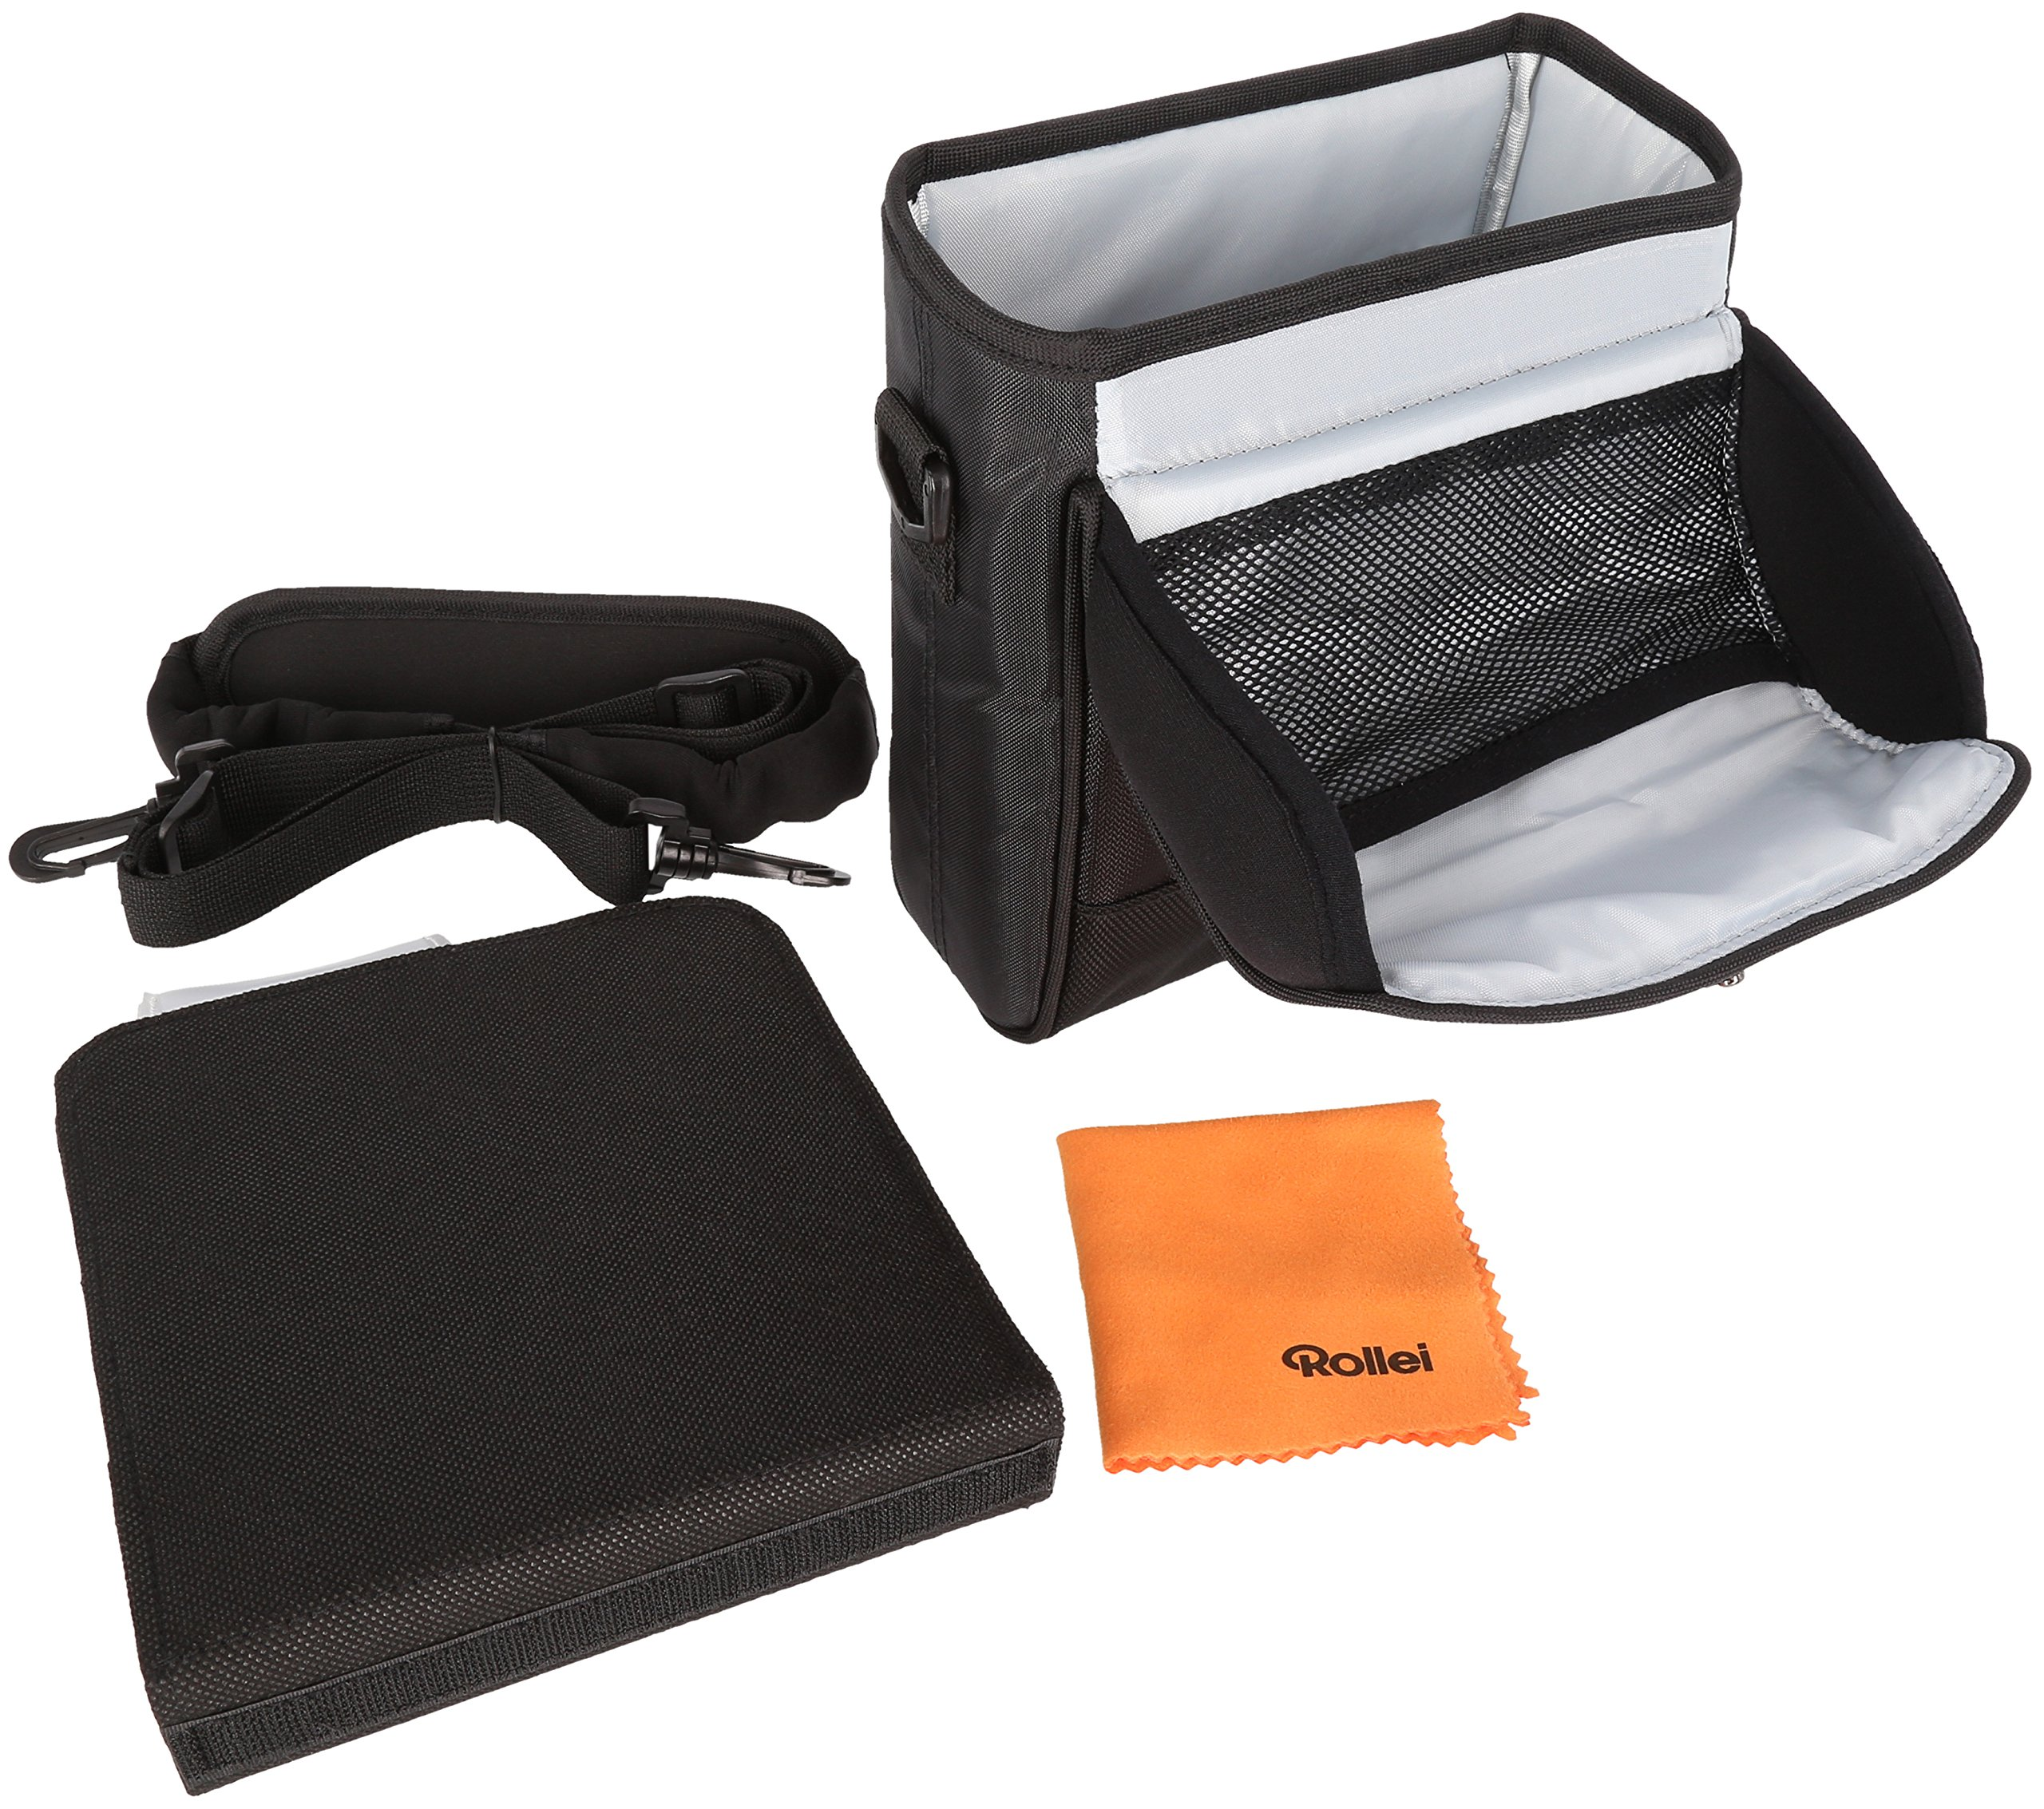 Rollei Square Filter Bag 150 mm - Padded Nylon Bag for Square Filters with a Width of 150 mm, incl. Shoulder Strap and Cleaning Cloth - Black by Rollei (Image #2)